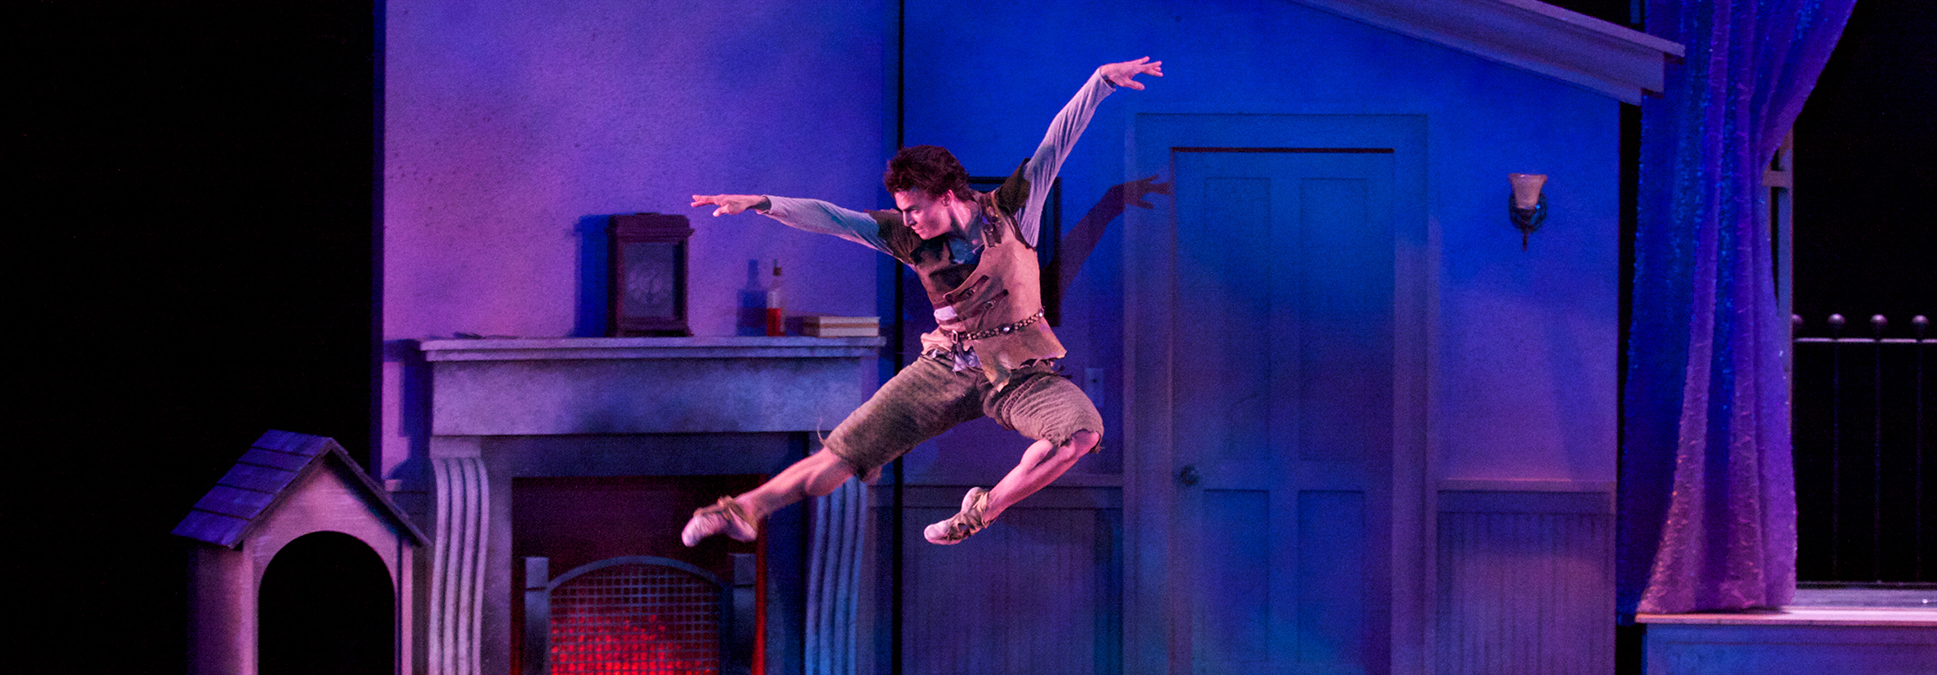 Milwaukee Ballet Performs Peter Pan at the Marcus Center in Milwaukee